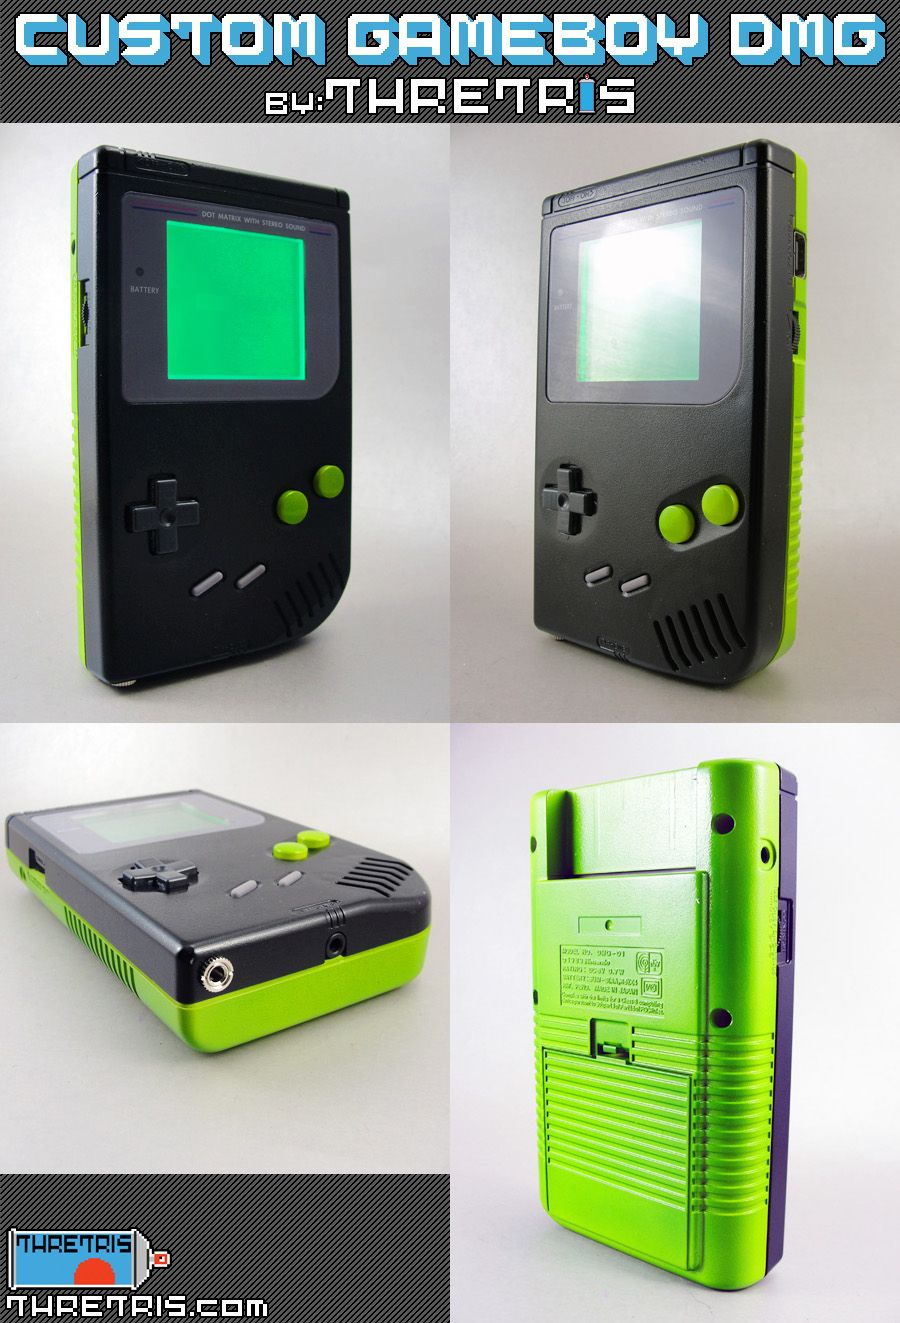 Game boy color palette - Custom Painted Original 1989 Nintendo Gameboy With Green Backlight And Prosound Mod Visit My Website Link Myspace Music Link Green And Black